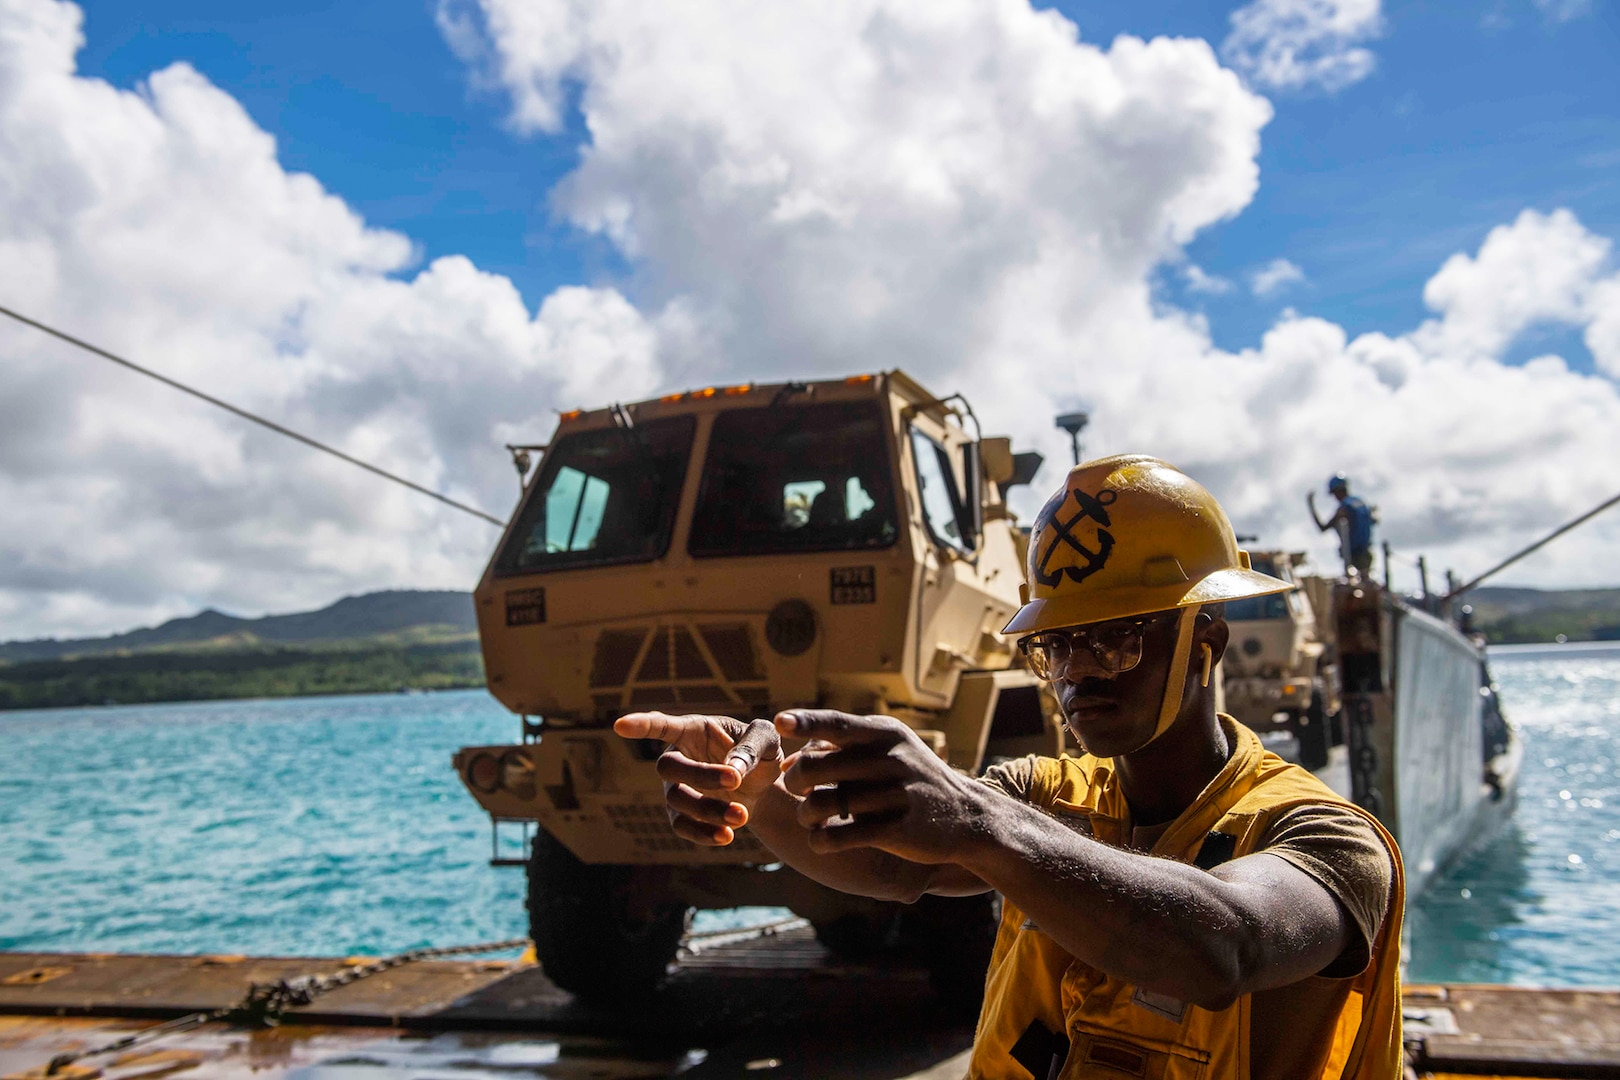 Guam National Guard plays role in moving supplies to Saipan